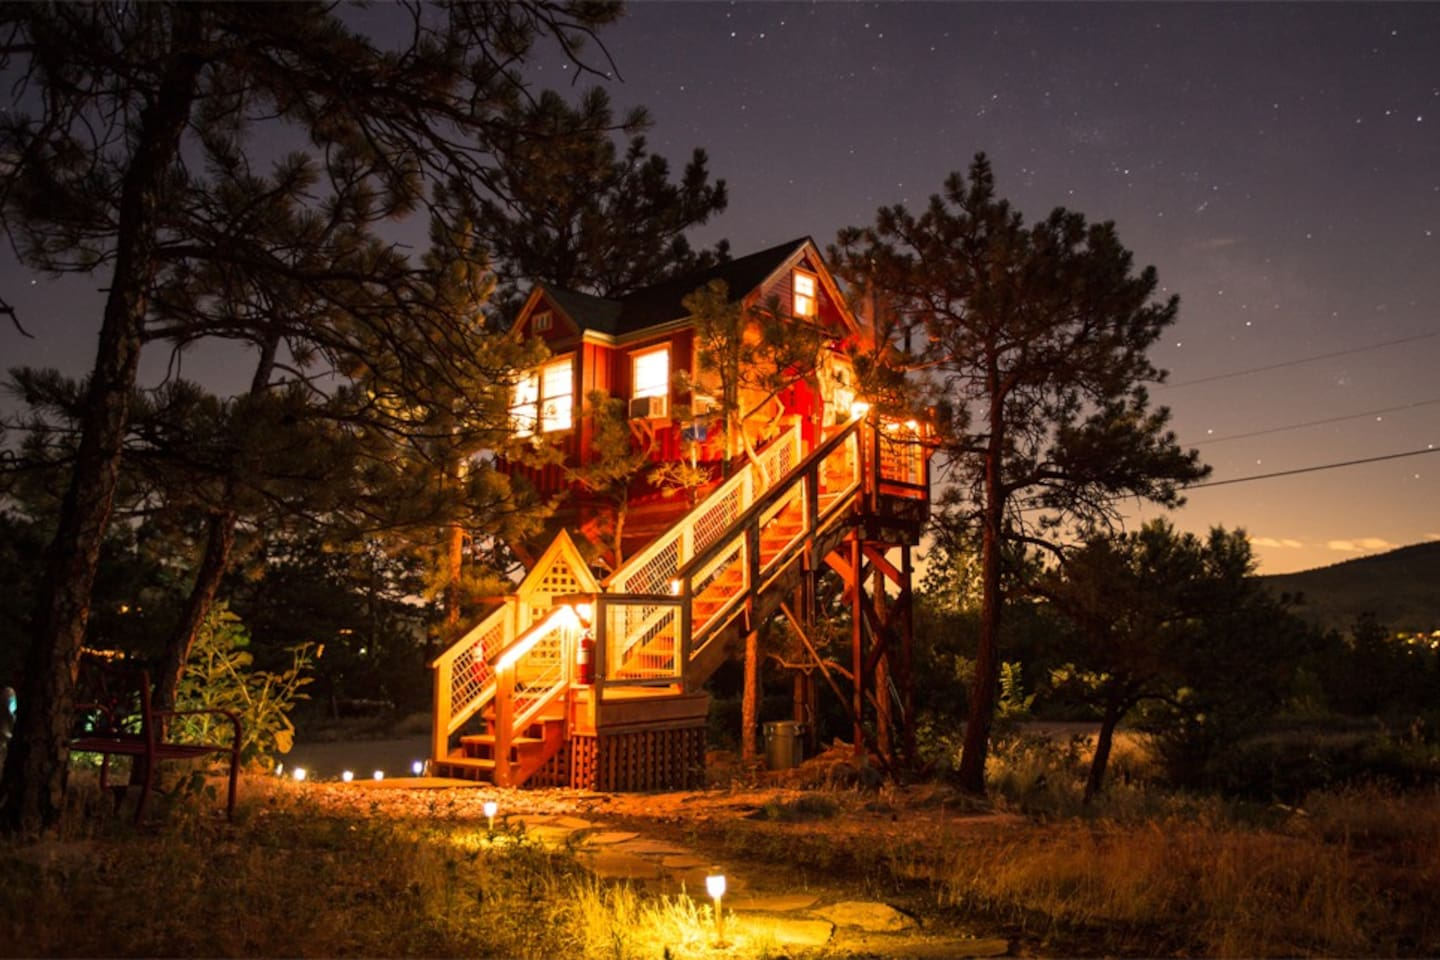 The Treehouse...All lit up...